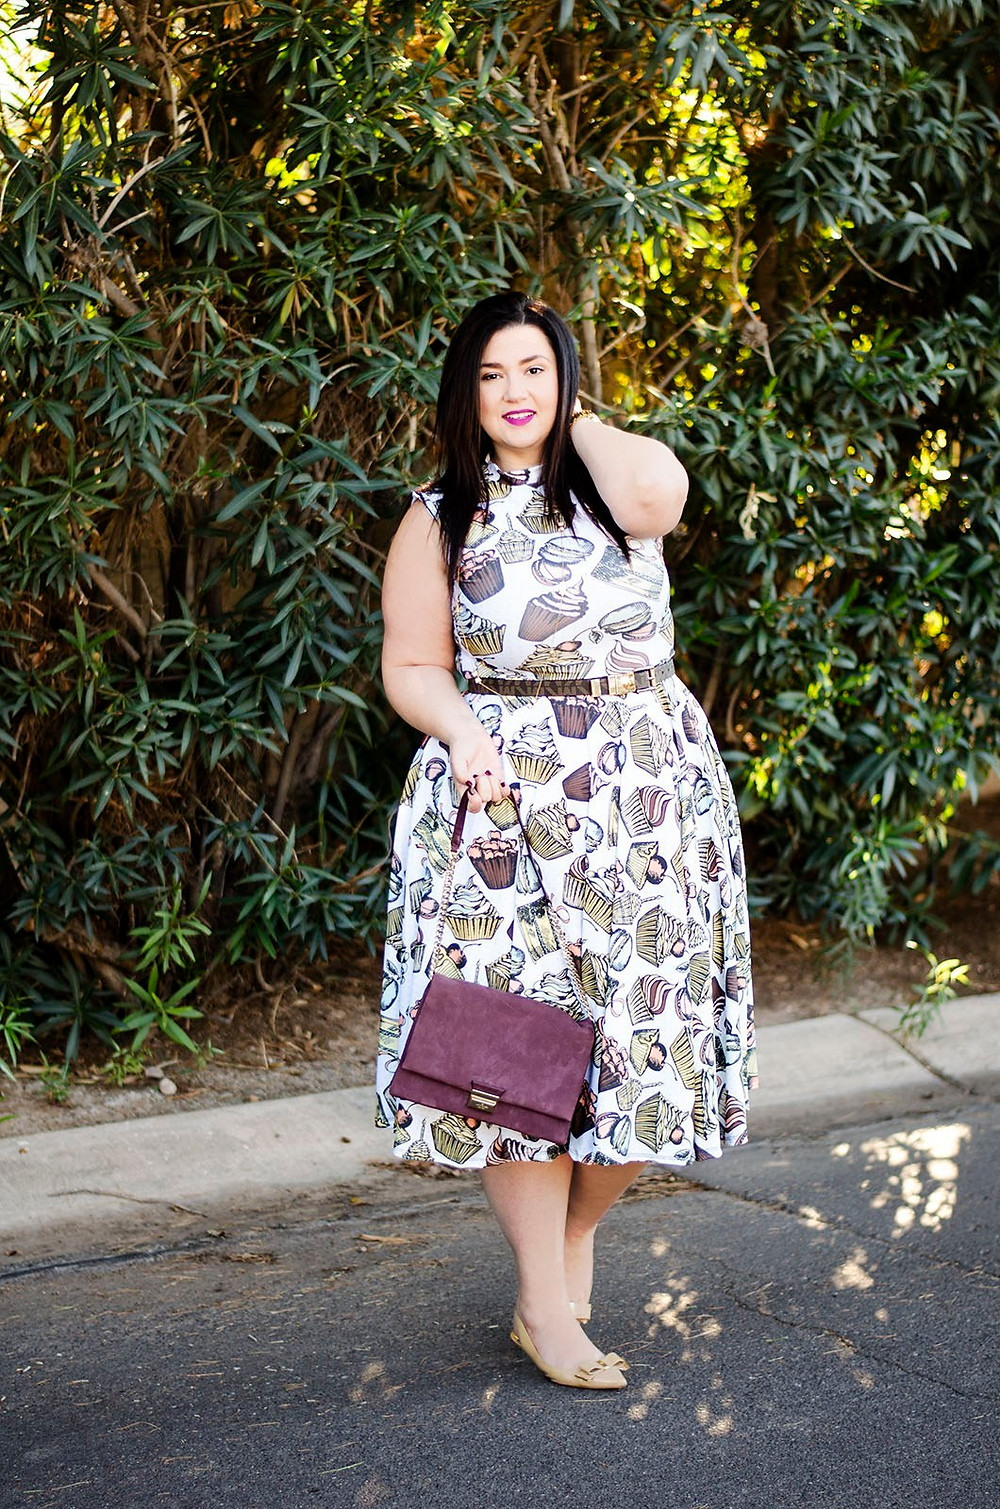 plus size dress rue 107 review ootd what to wear holiday party fit and flare dress dessert print cupcake macaron